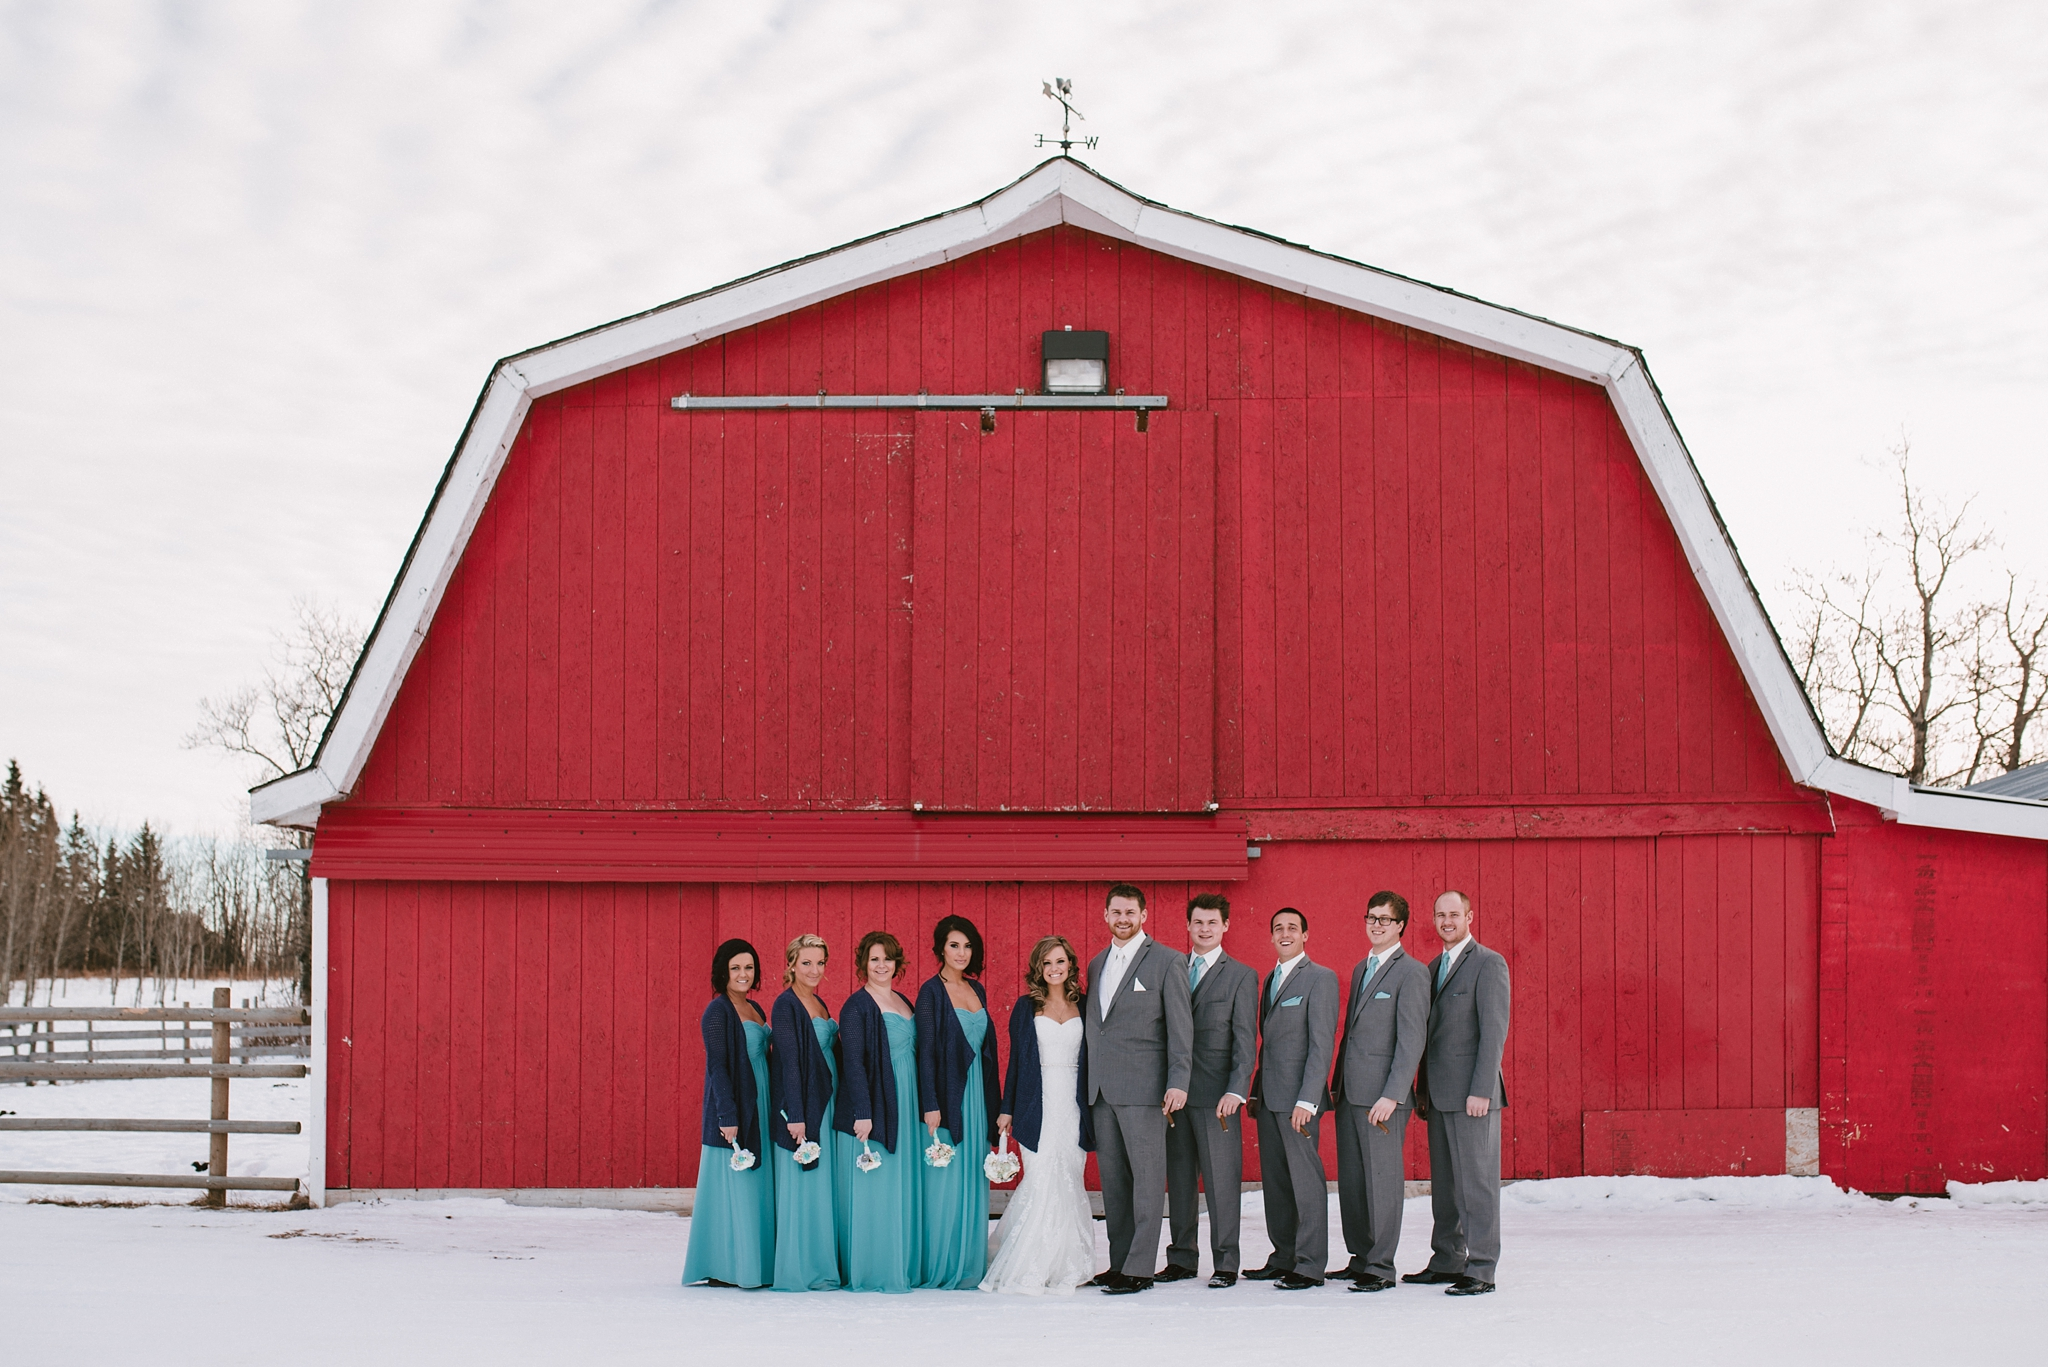 kaihla_tonai_intimate_wedding_elopement_photographer_0685